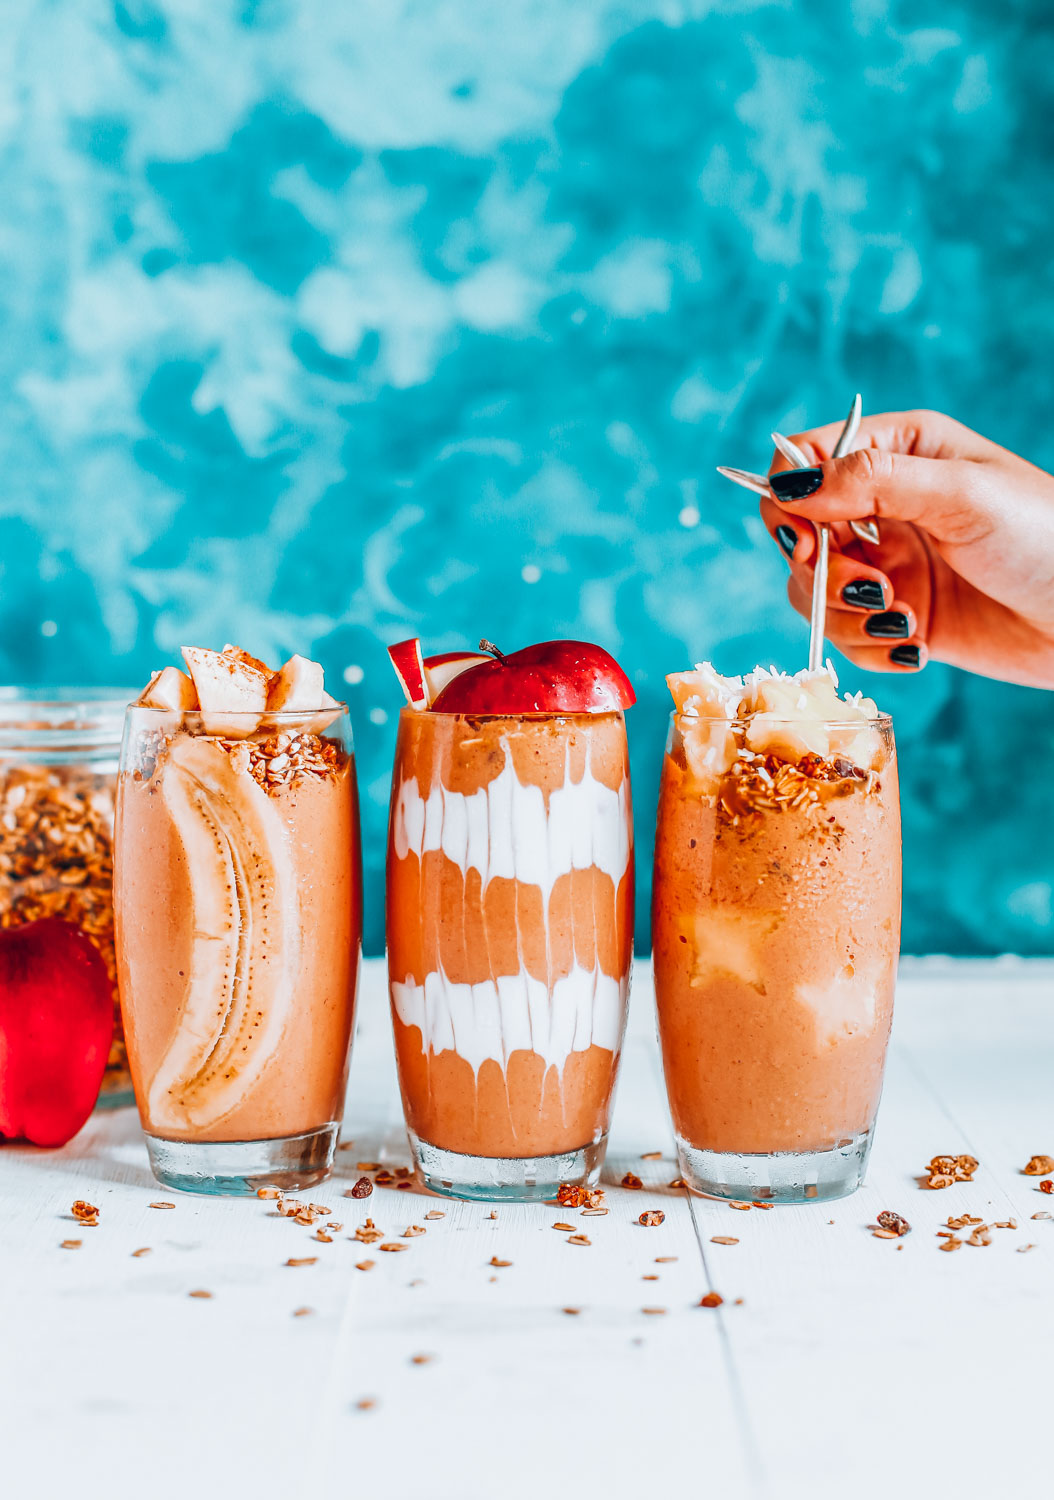 Looking for the perfect plant based smoothies? We not only have that, but also, we have vegan, high calorie smoothies, lemon smoothies, and so many more delicious goodness that you should try!